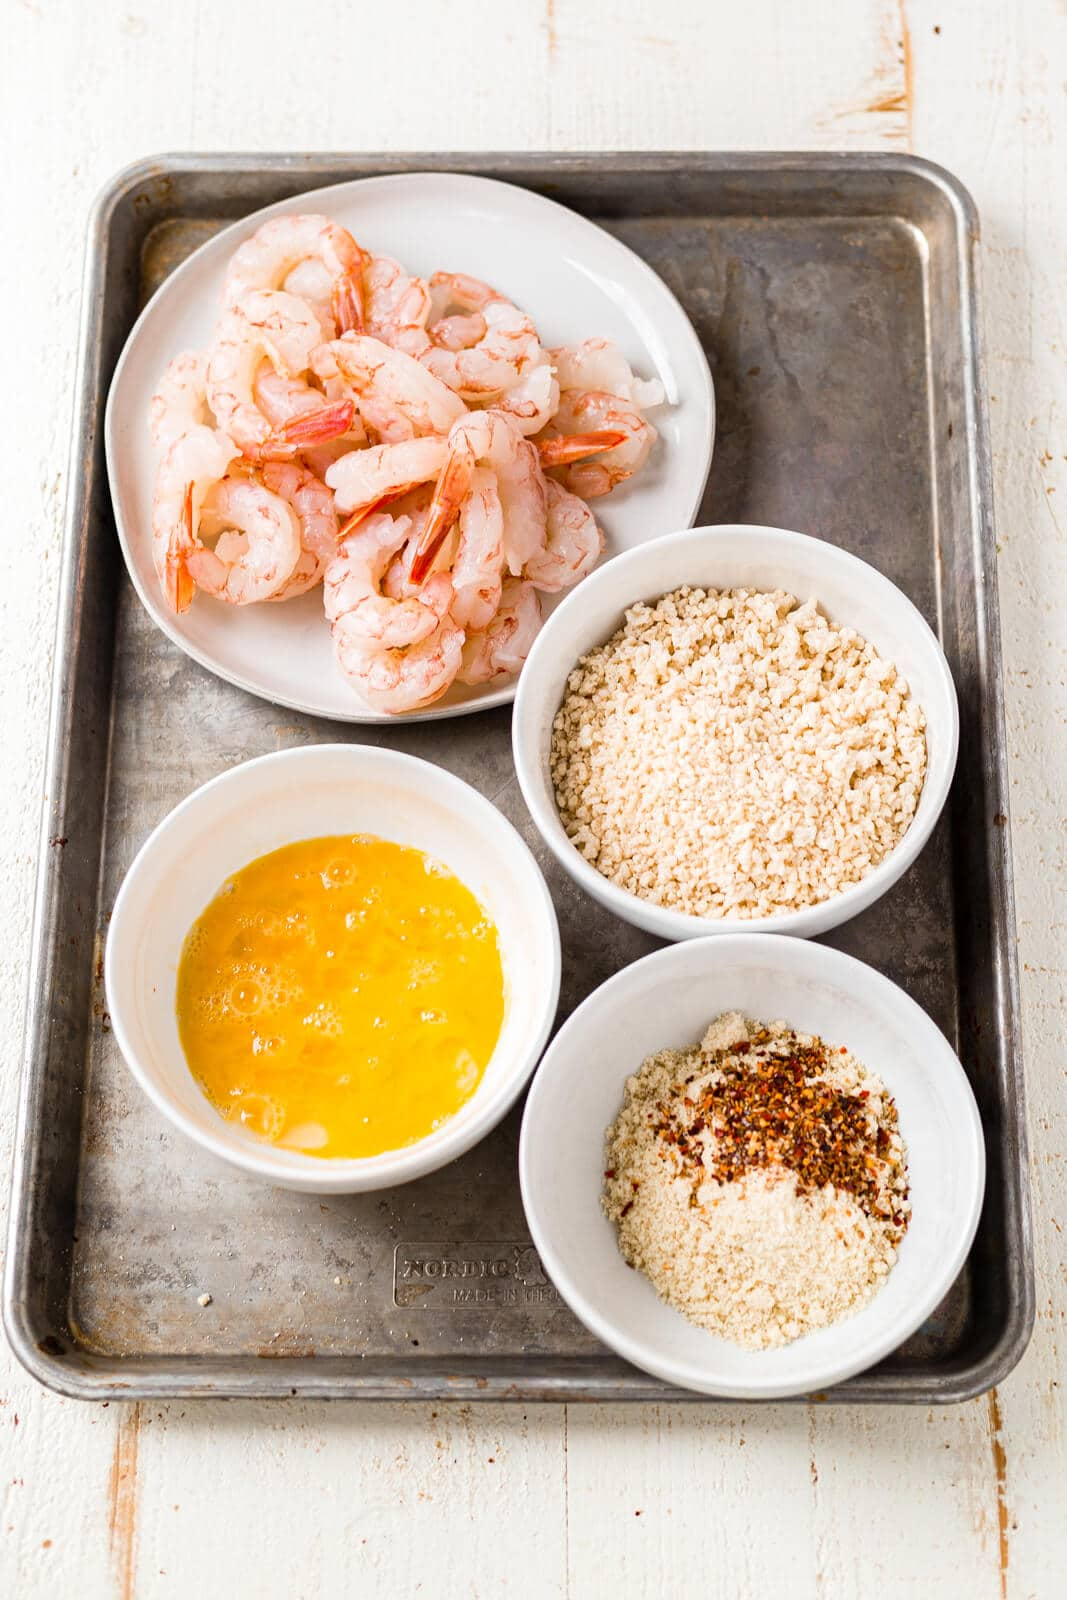 all of the ingredients for crispy air fryer shrimp sitting on a sheet pan before being breaded and cooked